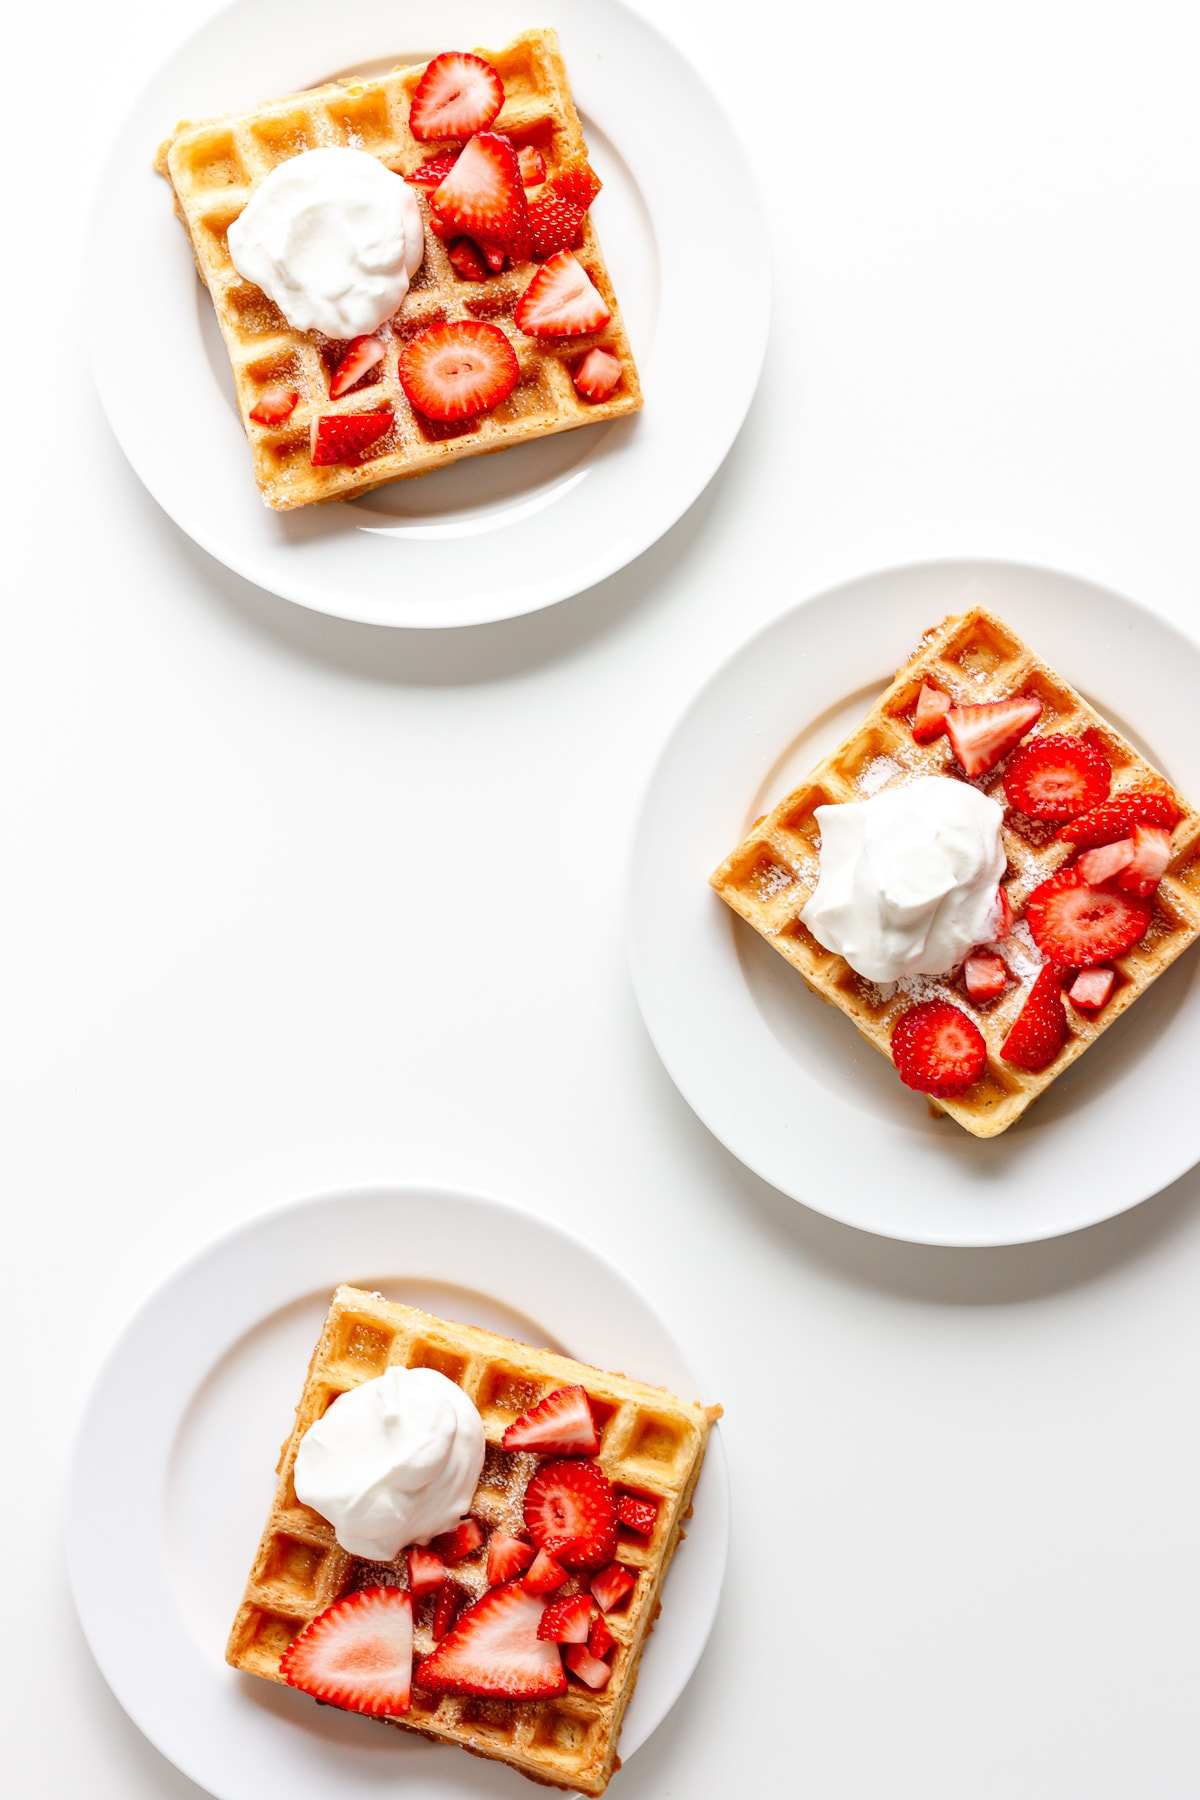 Three white plates each holding one square waffle topped with fresh strawberries and whipped cream.